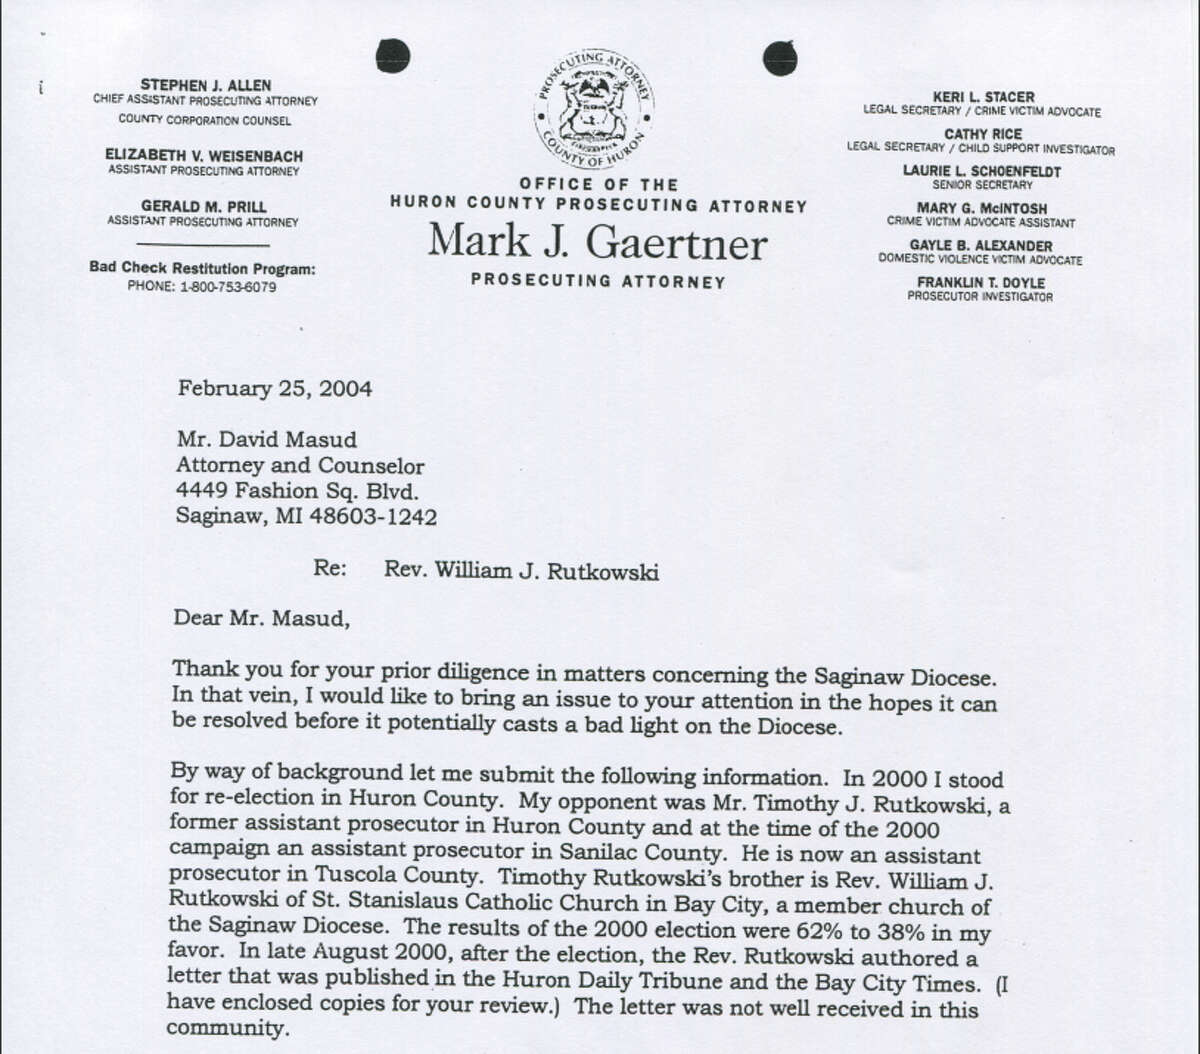 This is a 2004 letter from former Huron County Prosecutor Mark Gaertner to an attorney representing the Diocese of Saginaw.